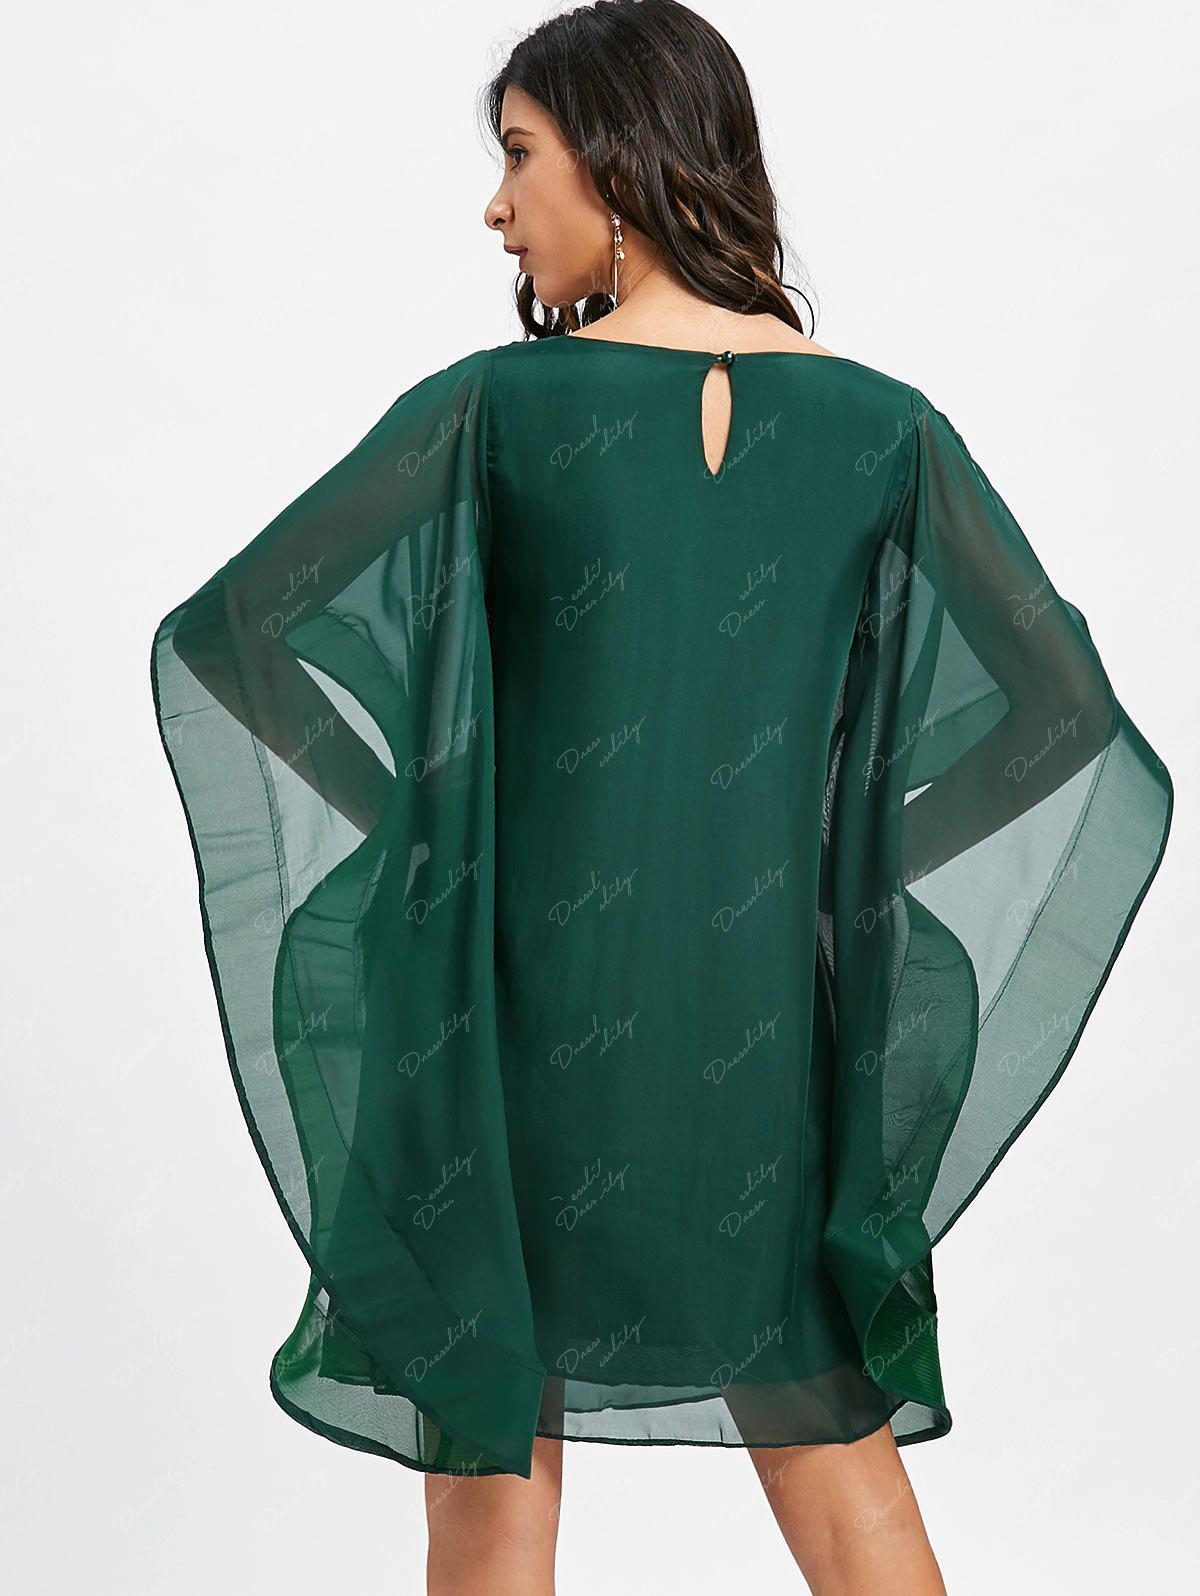 Bell Sleeve Chiffon Shift Mini Dress - GREEN M